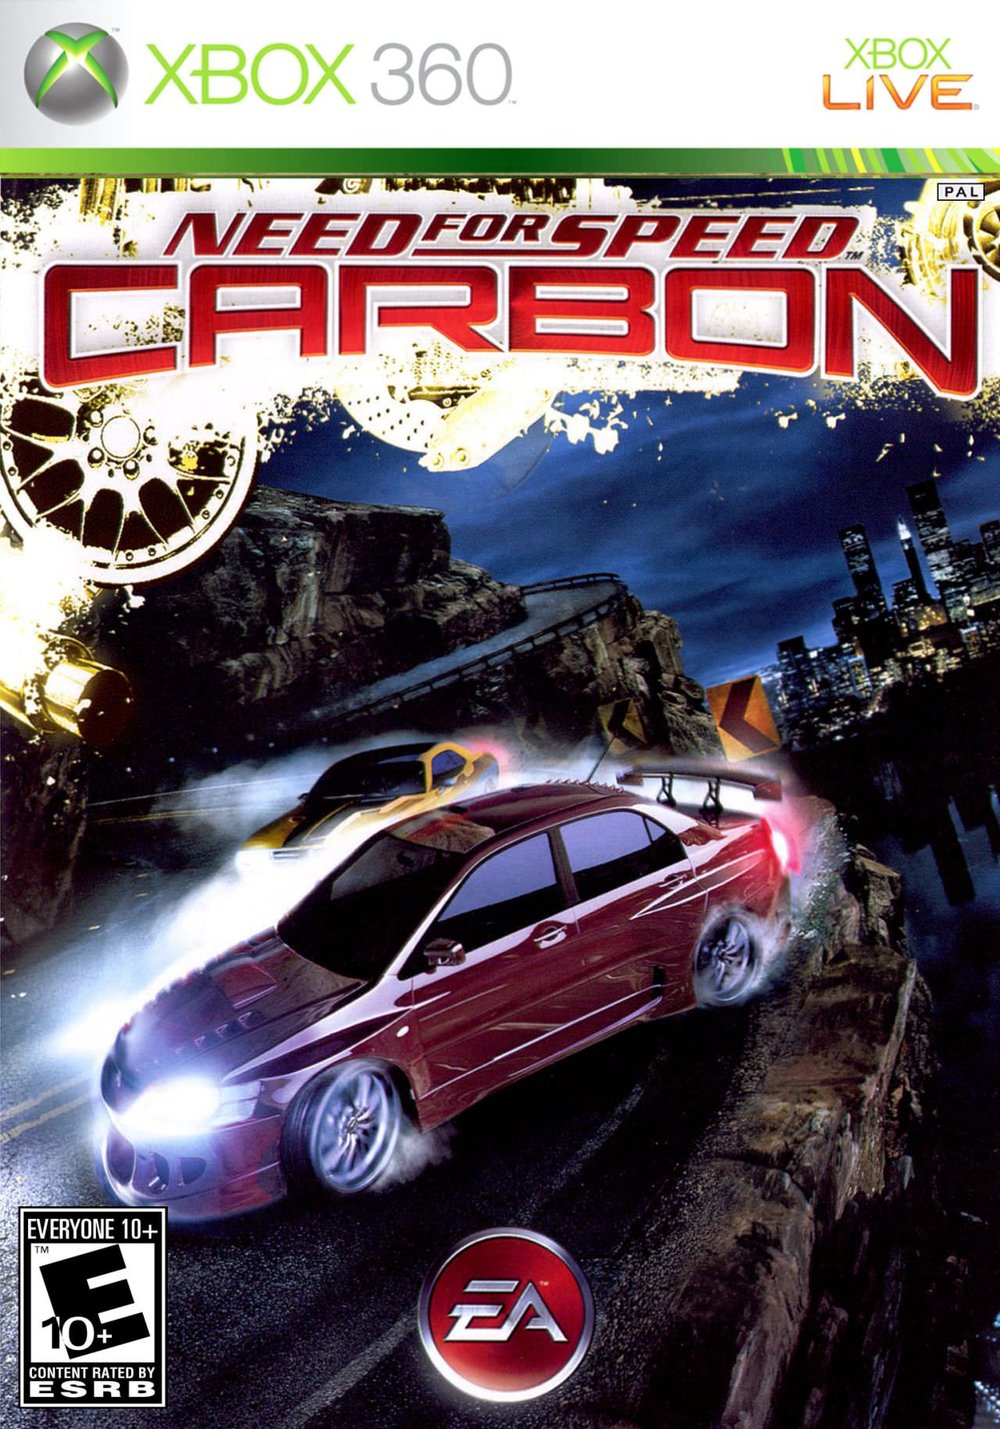 2006 Need for Speed - Carbon.jpg